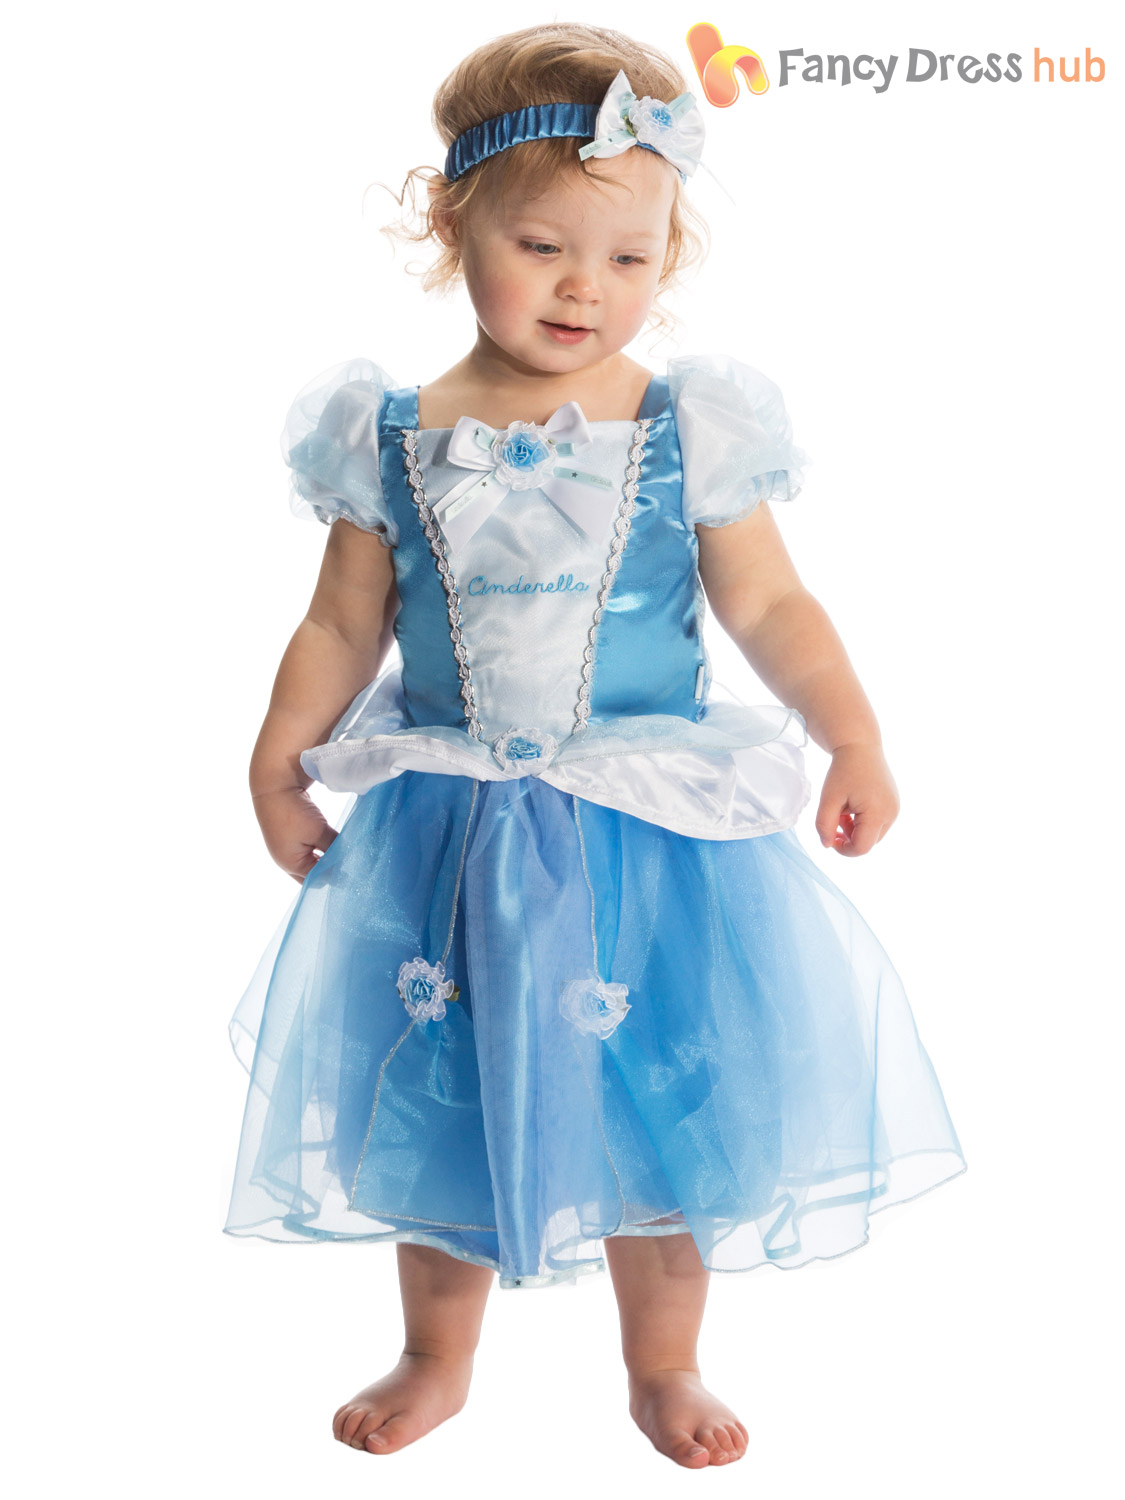 Princess Girl Fairytale Fancy Dress Up Outfit Baby Toddler Blue Skirts Gown Kids